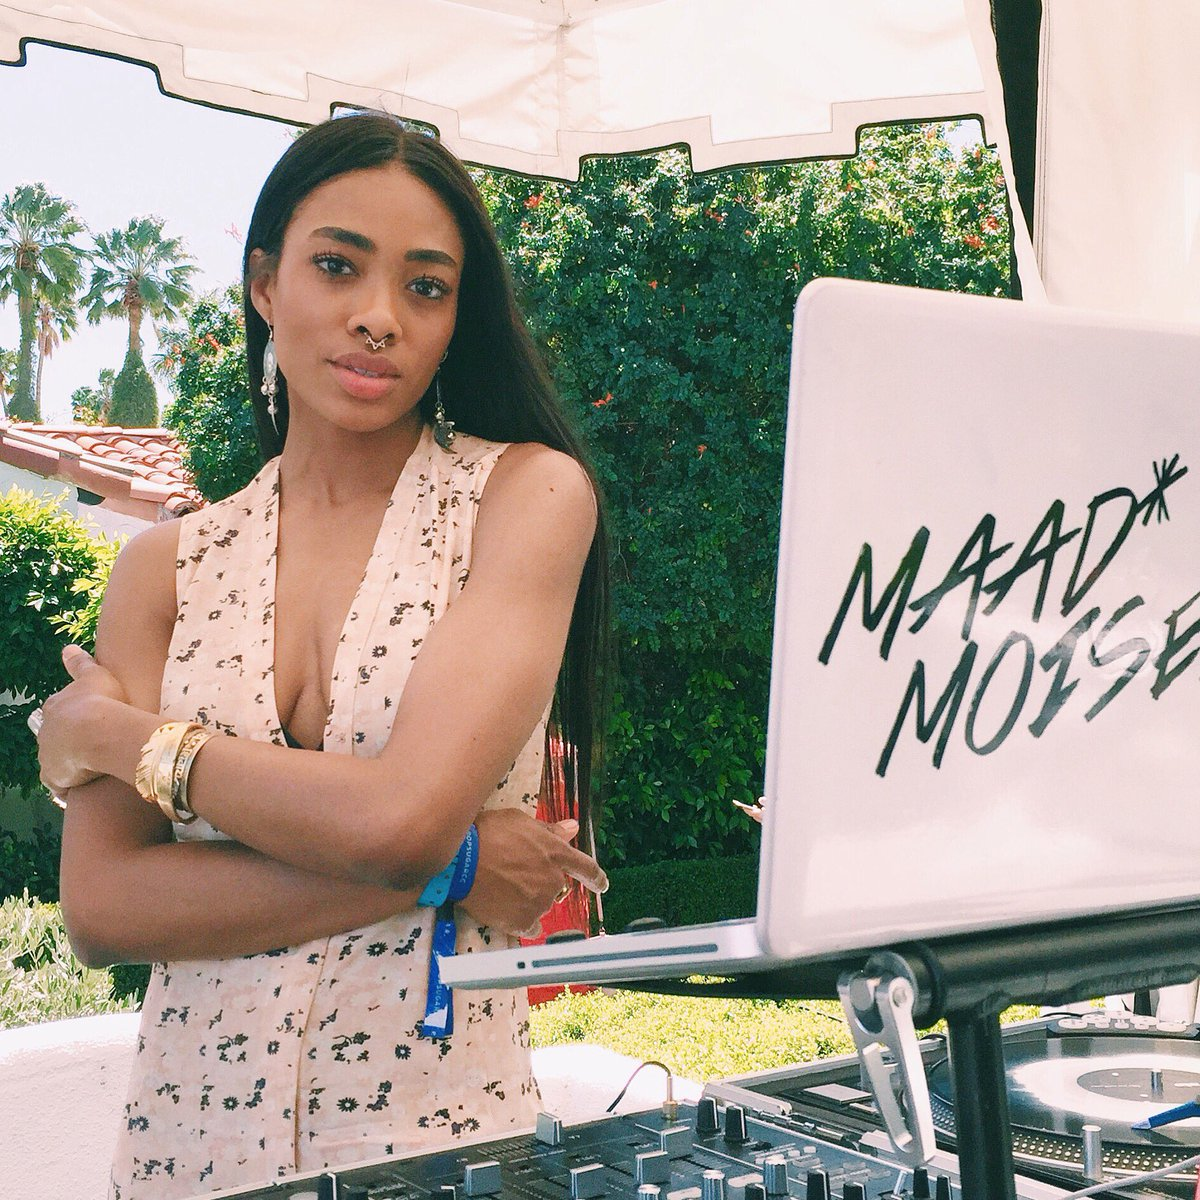 DJ @maad_moiselle At The @popsugar Event // Feather Cuff & Aquarian Cuff As A Septum Ring #camjewelry #coachella https://t.co/5EF1UAeK2E